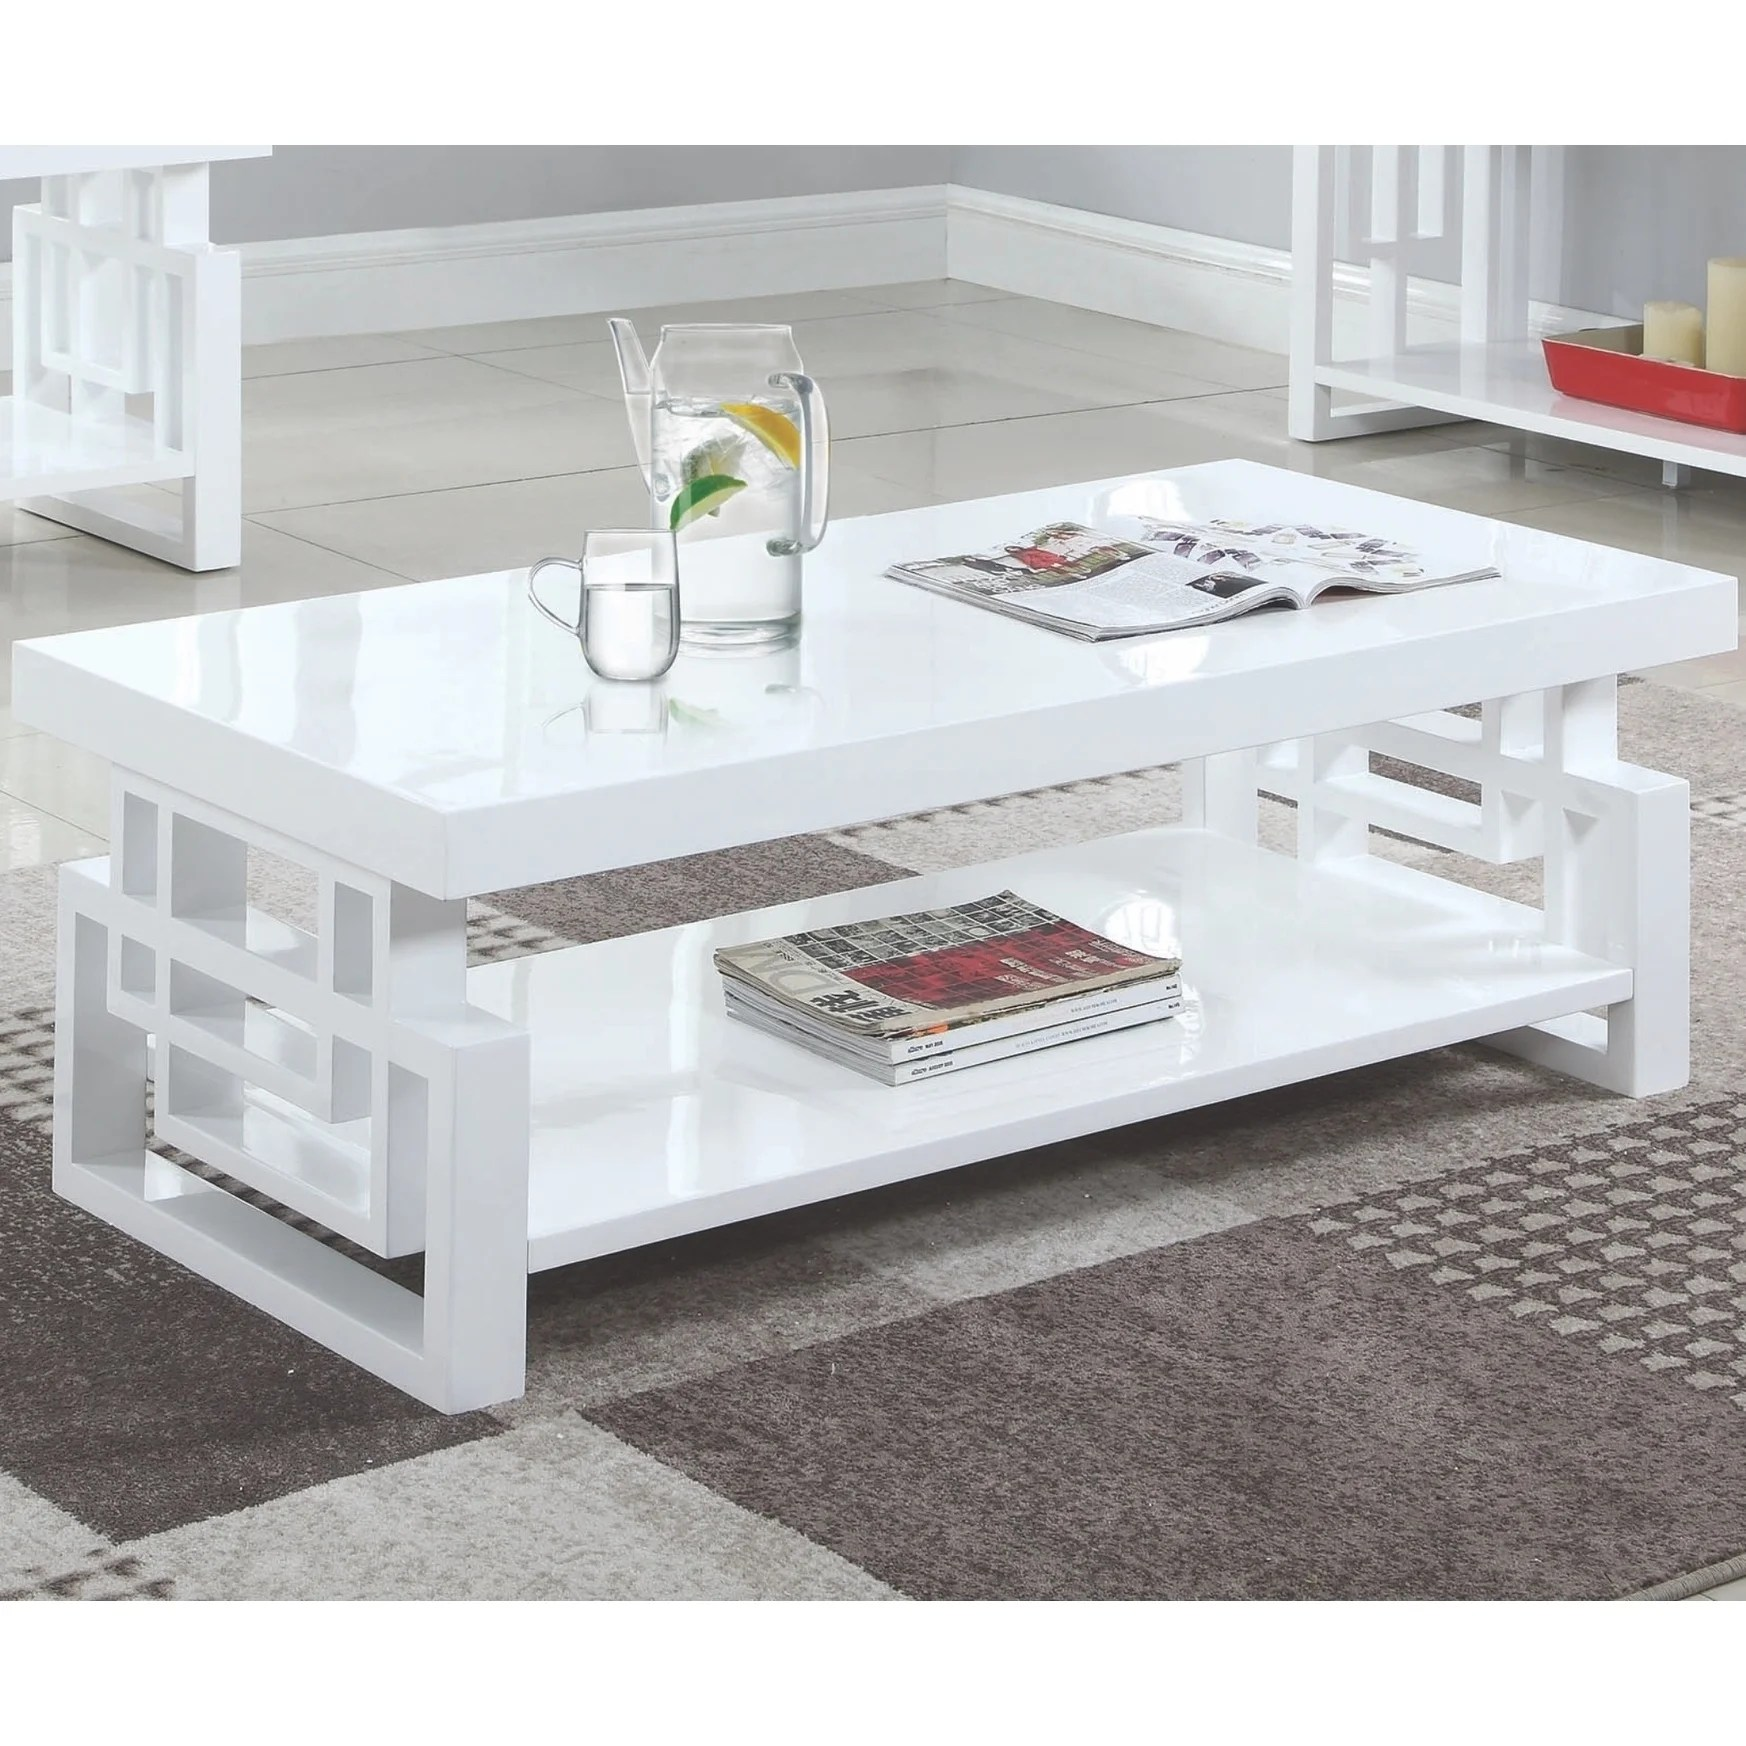 Shop Modern Artistic Design High Glossy White Living Room Table Collection On Sale Overstock 29210670